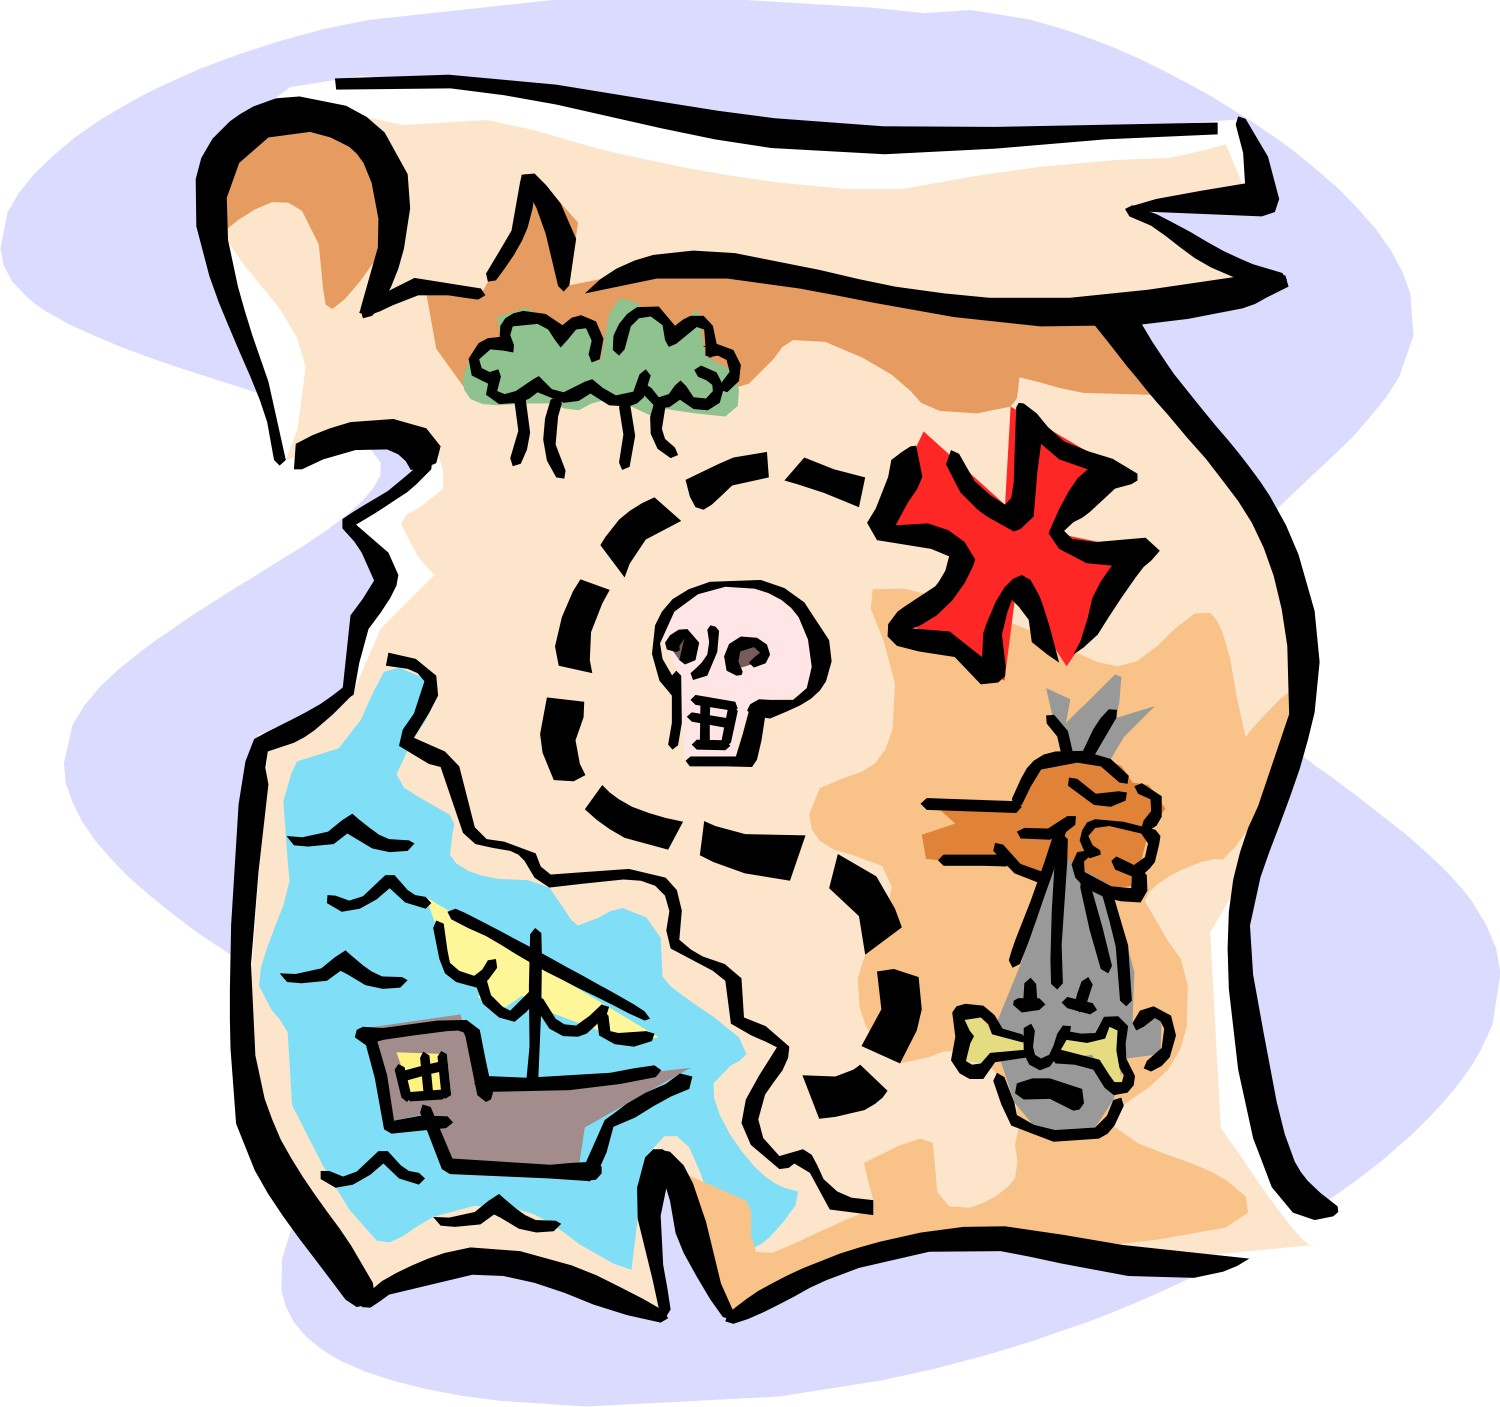 Pirate Maps Of The Treasure Island Clipart - ClipArt Best